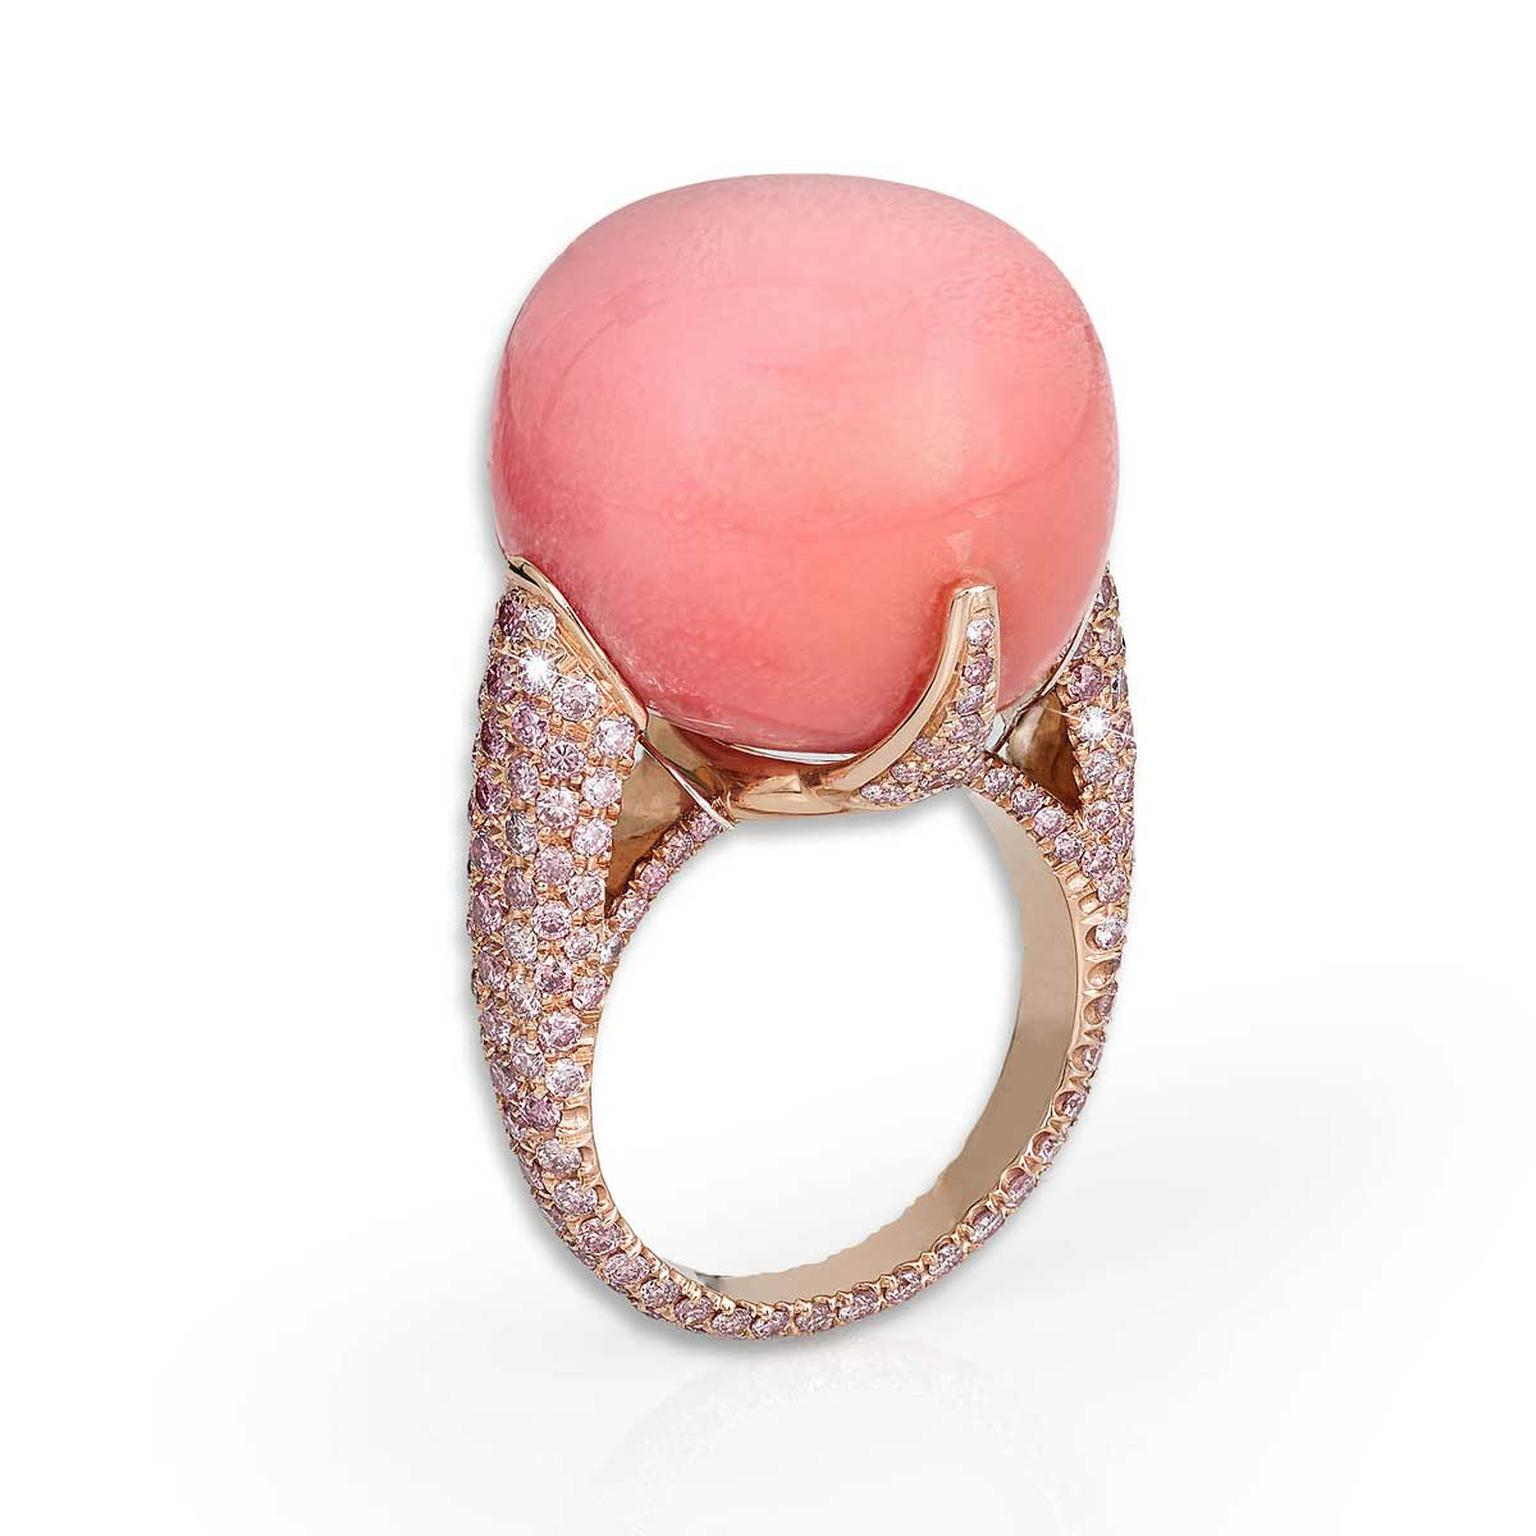 David Morris conch pearl ring weighing 44.55 carats